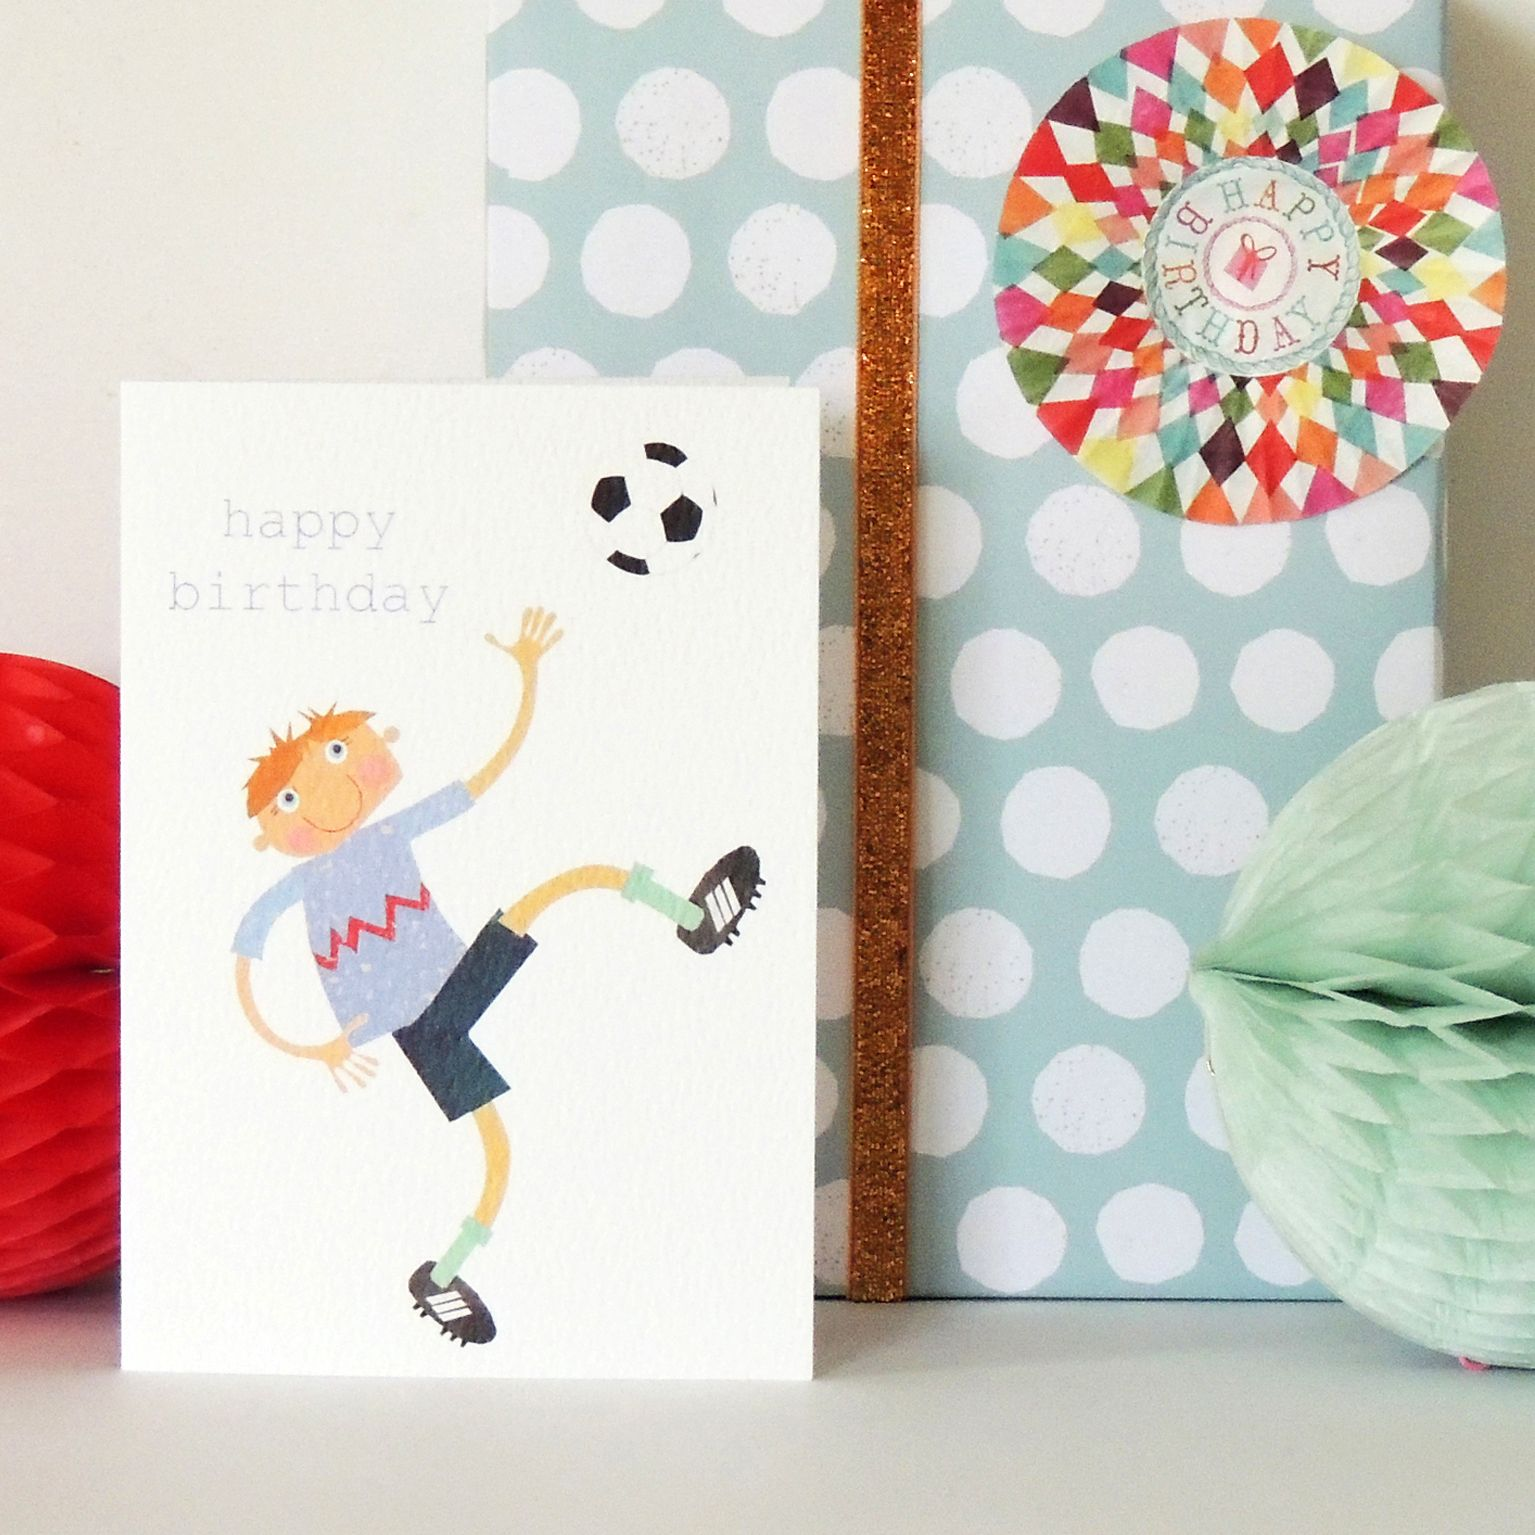 Football Birthday Card In